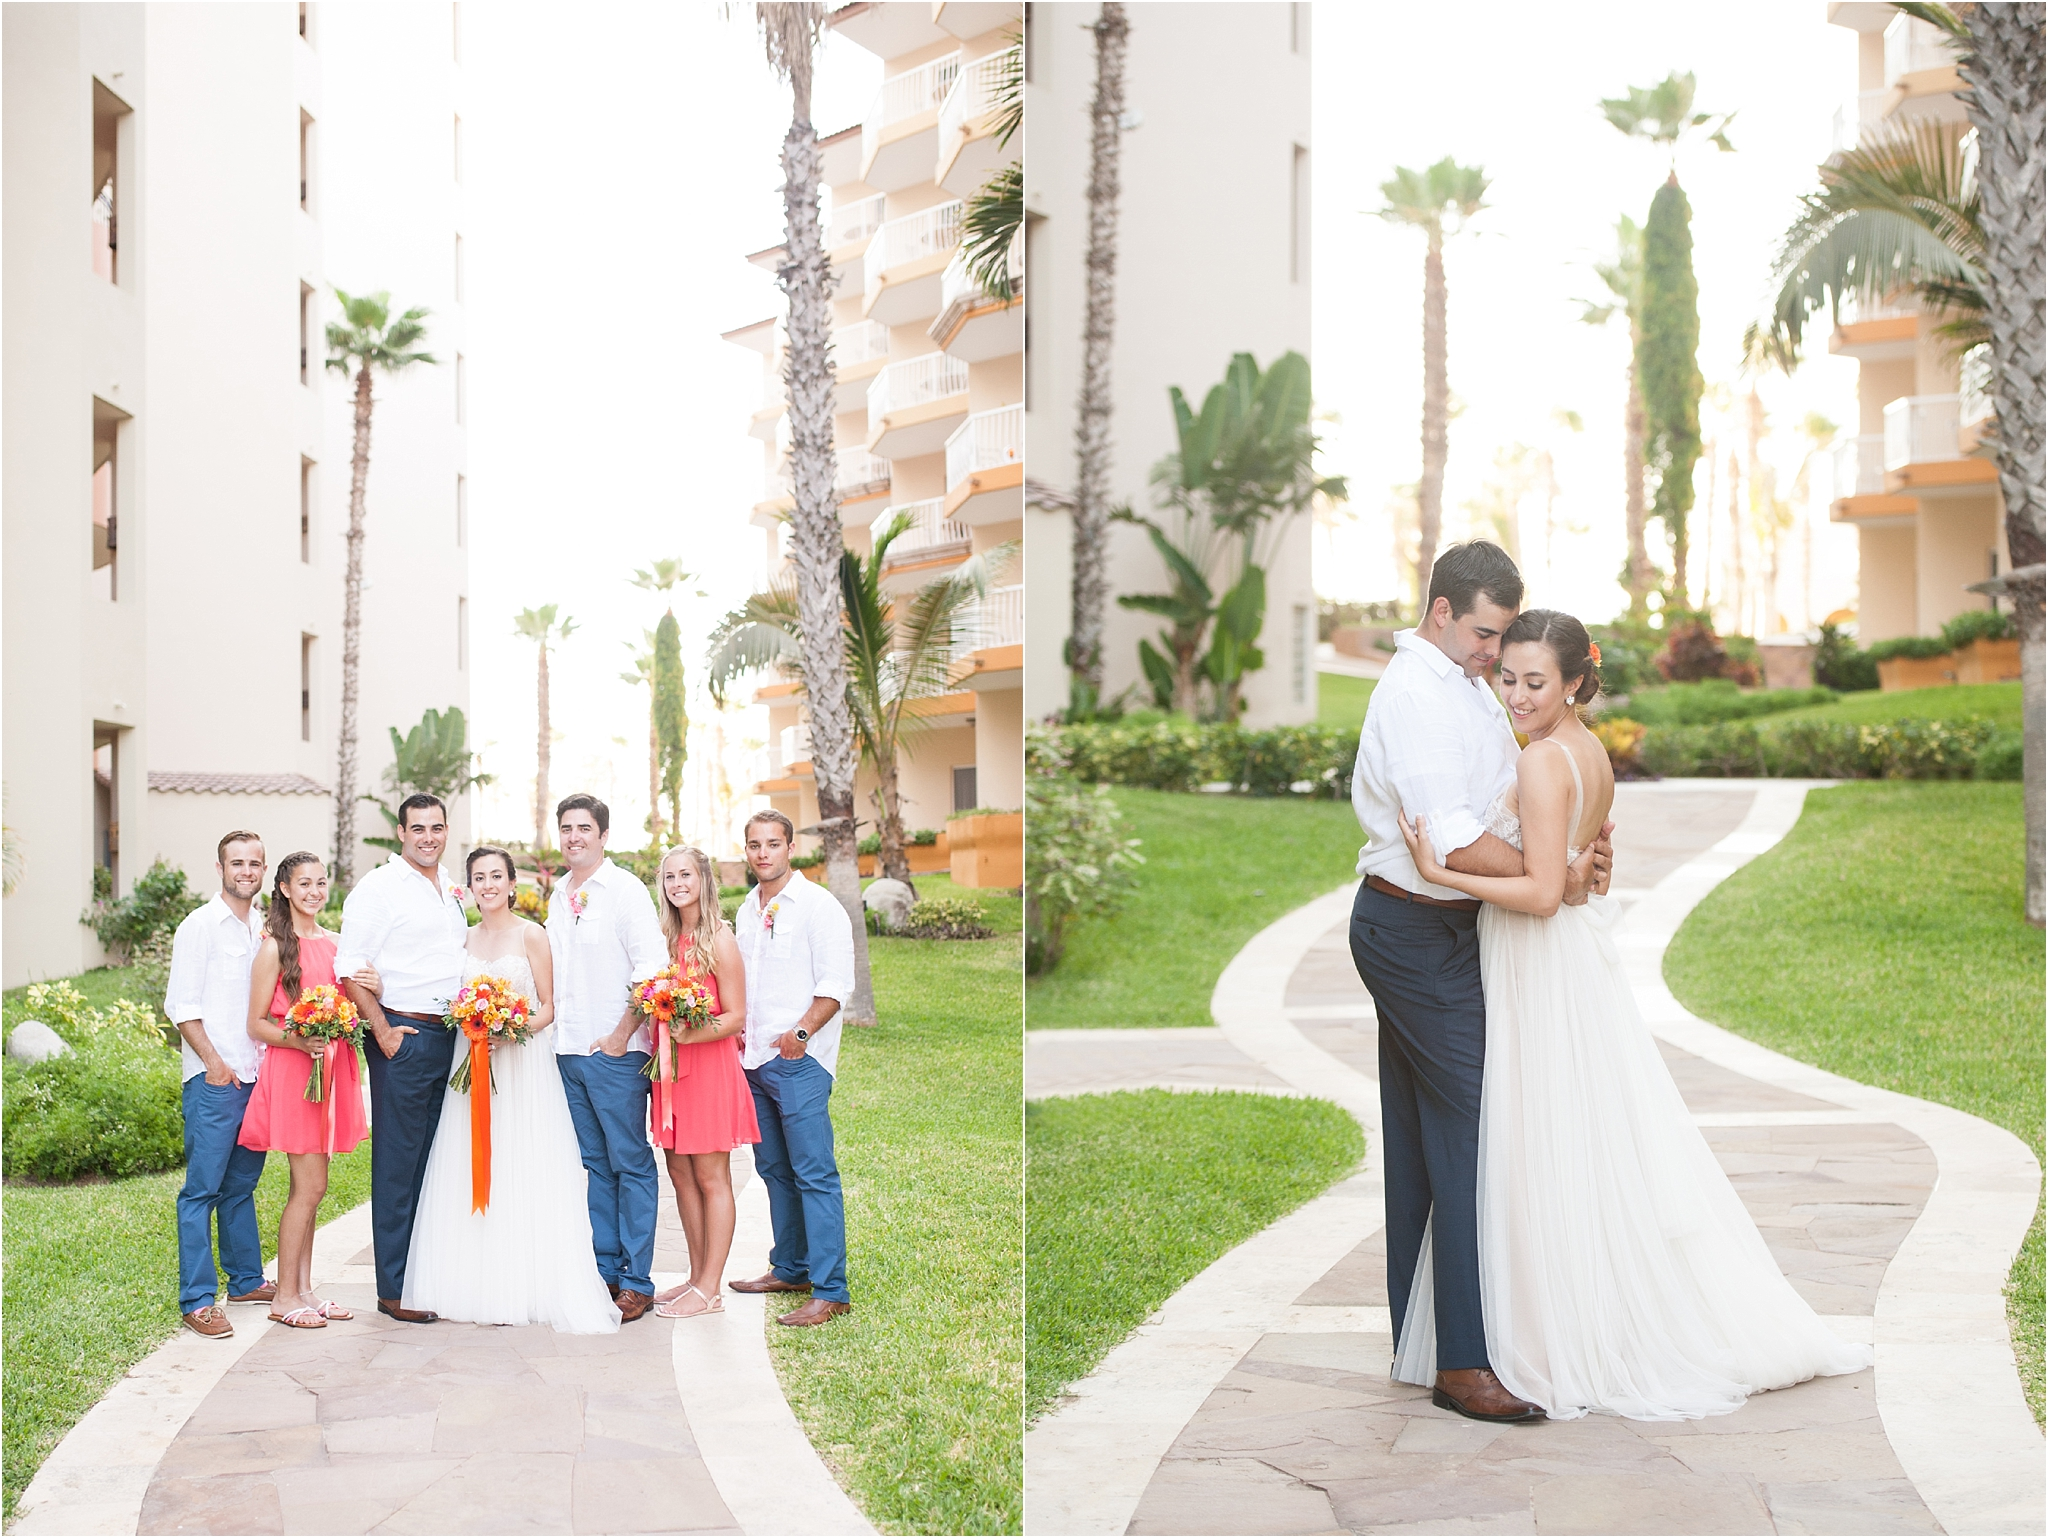 kayla kitts photography - albuquerque wedding photographer - new mexico wedding photographer - desination wedding photographer - cabo wedding photographer_0066.jpg